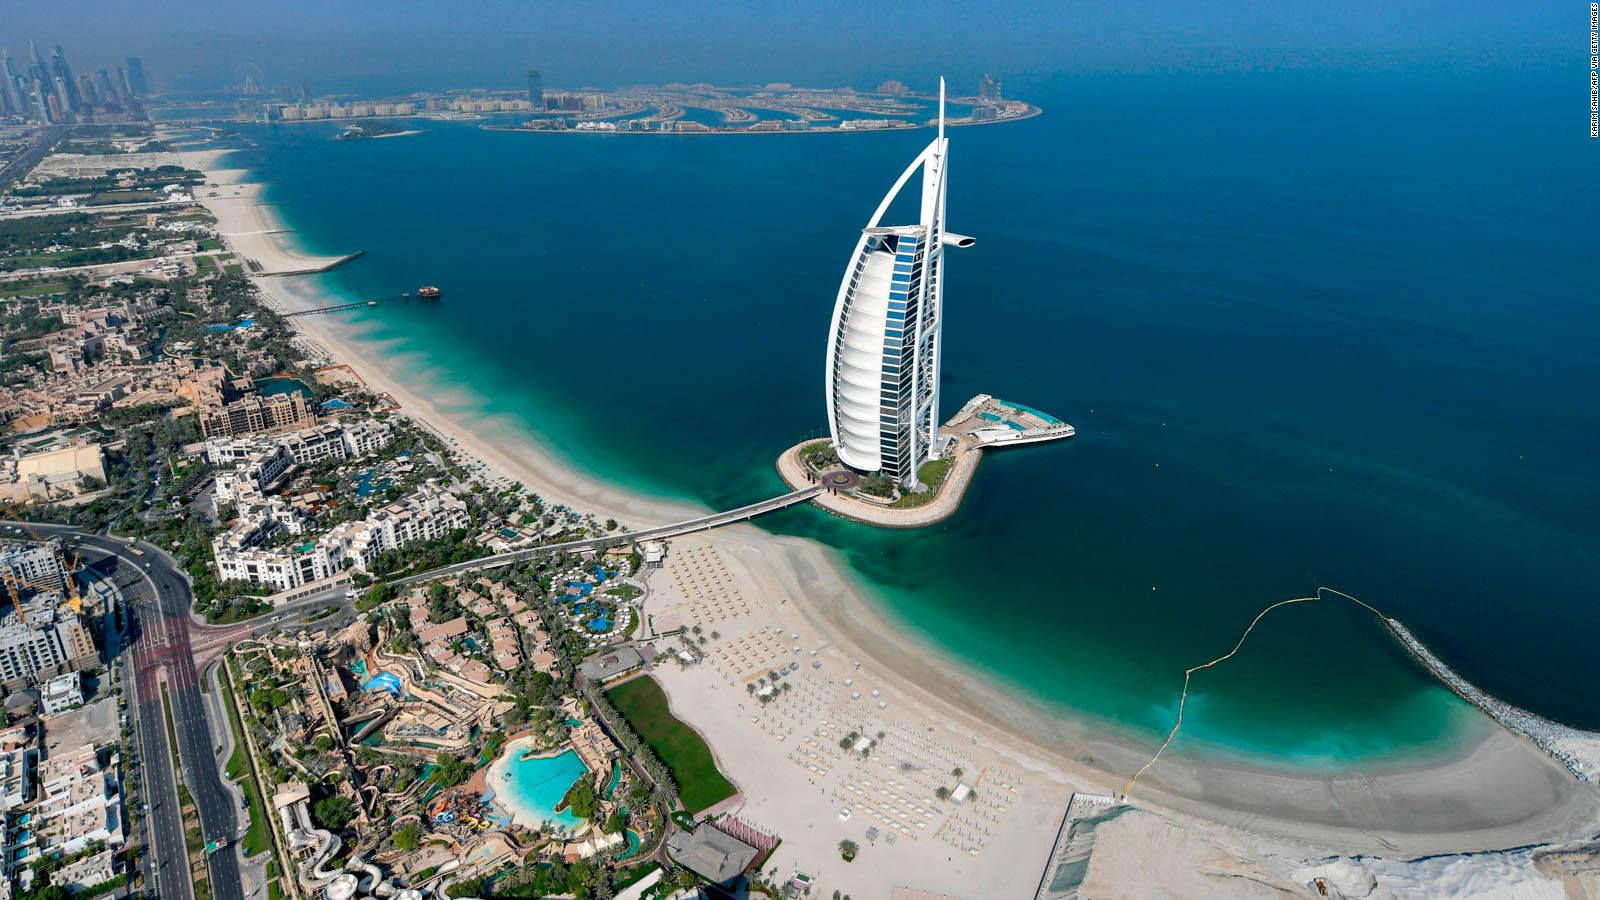 Dubai during Covid-19: What it's like to visit as a tourist right now | CNN  Travel